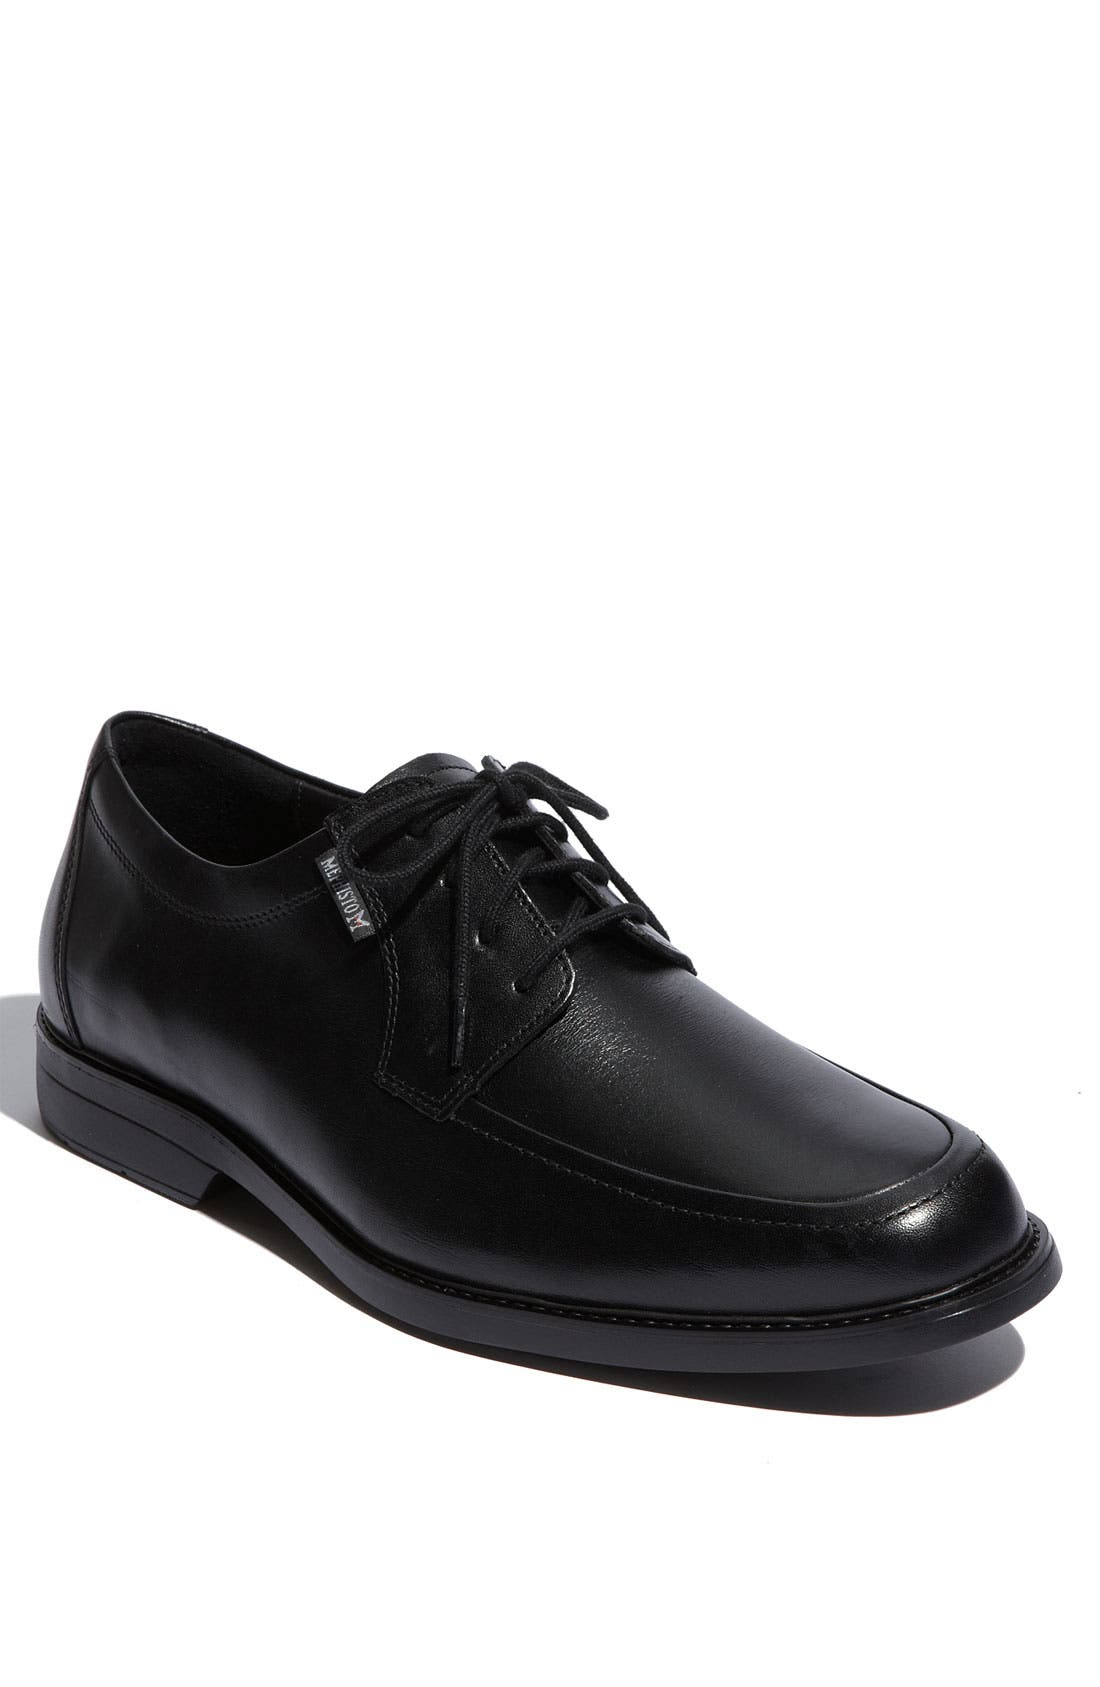 Alternate Image 1 Selected - Mephisto 'Gusto' Oxford (Men)